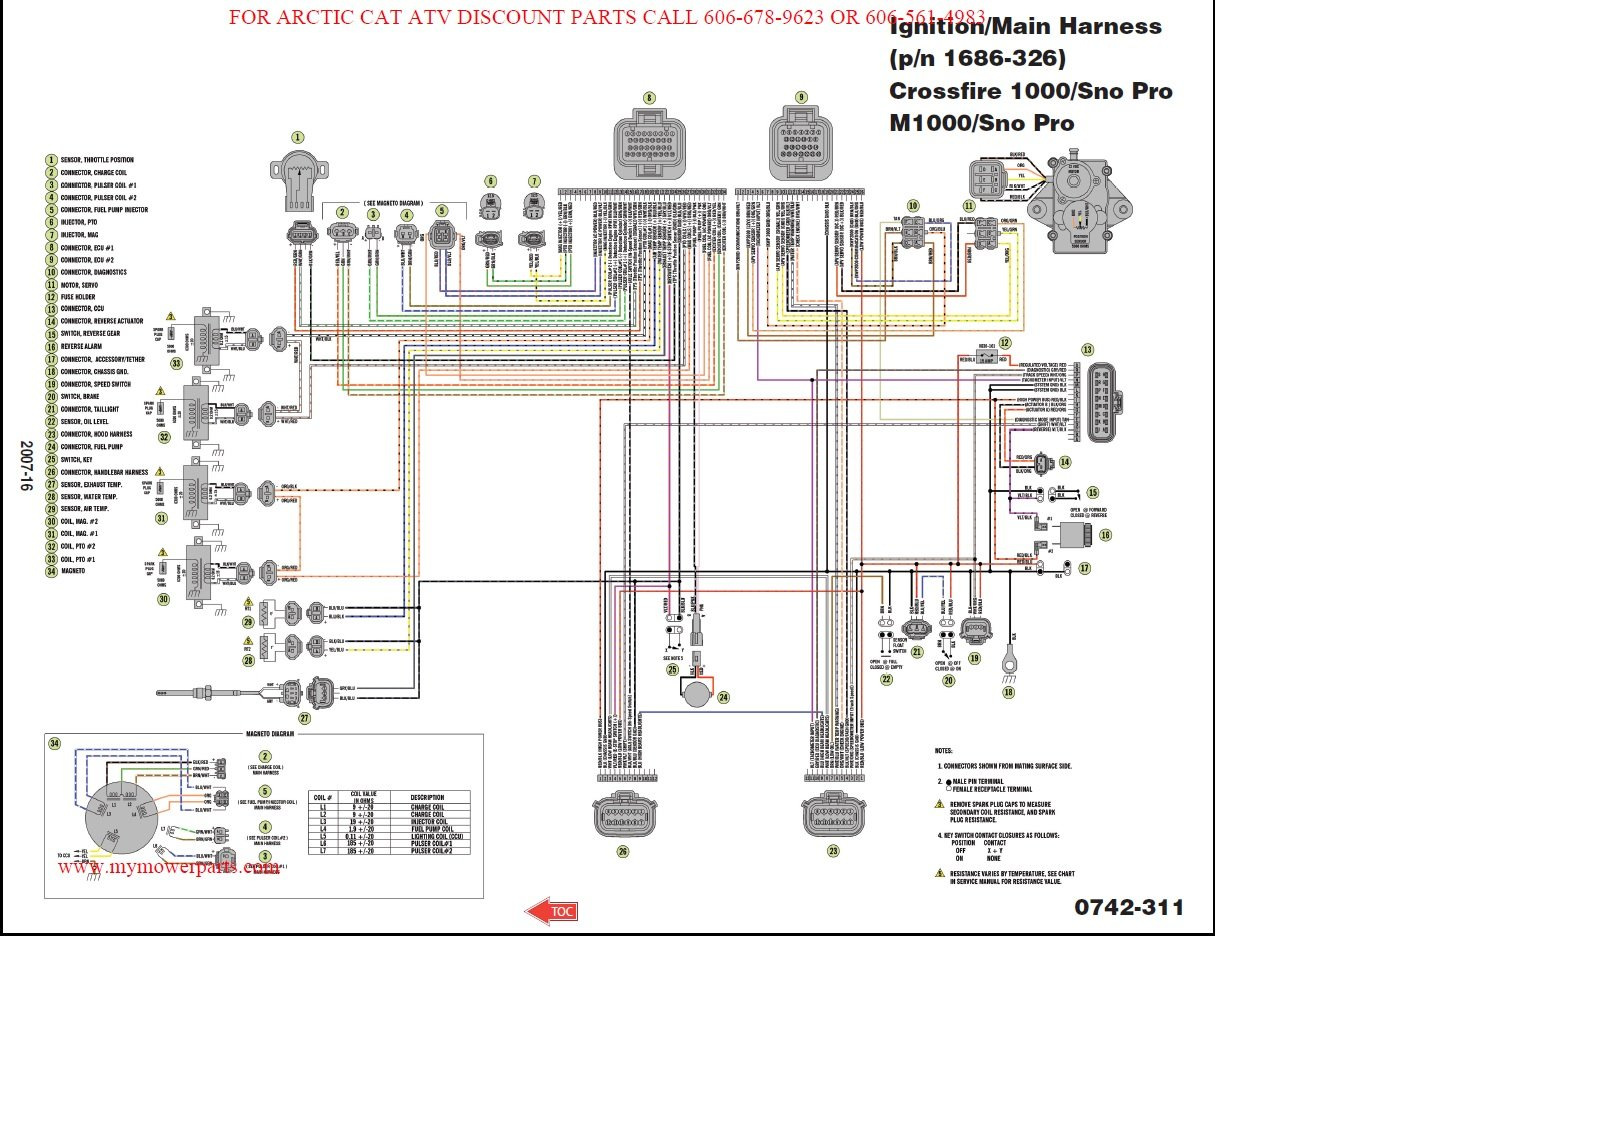 hight resolution of 2007 sno pro wiring diagram arcticchat com arctic cat 2014 polaris rzr wiring diagram 2010 polaris